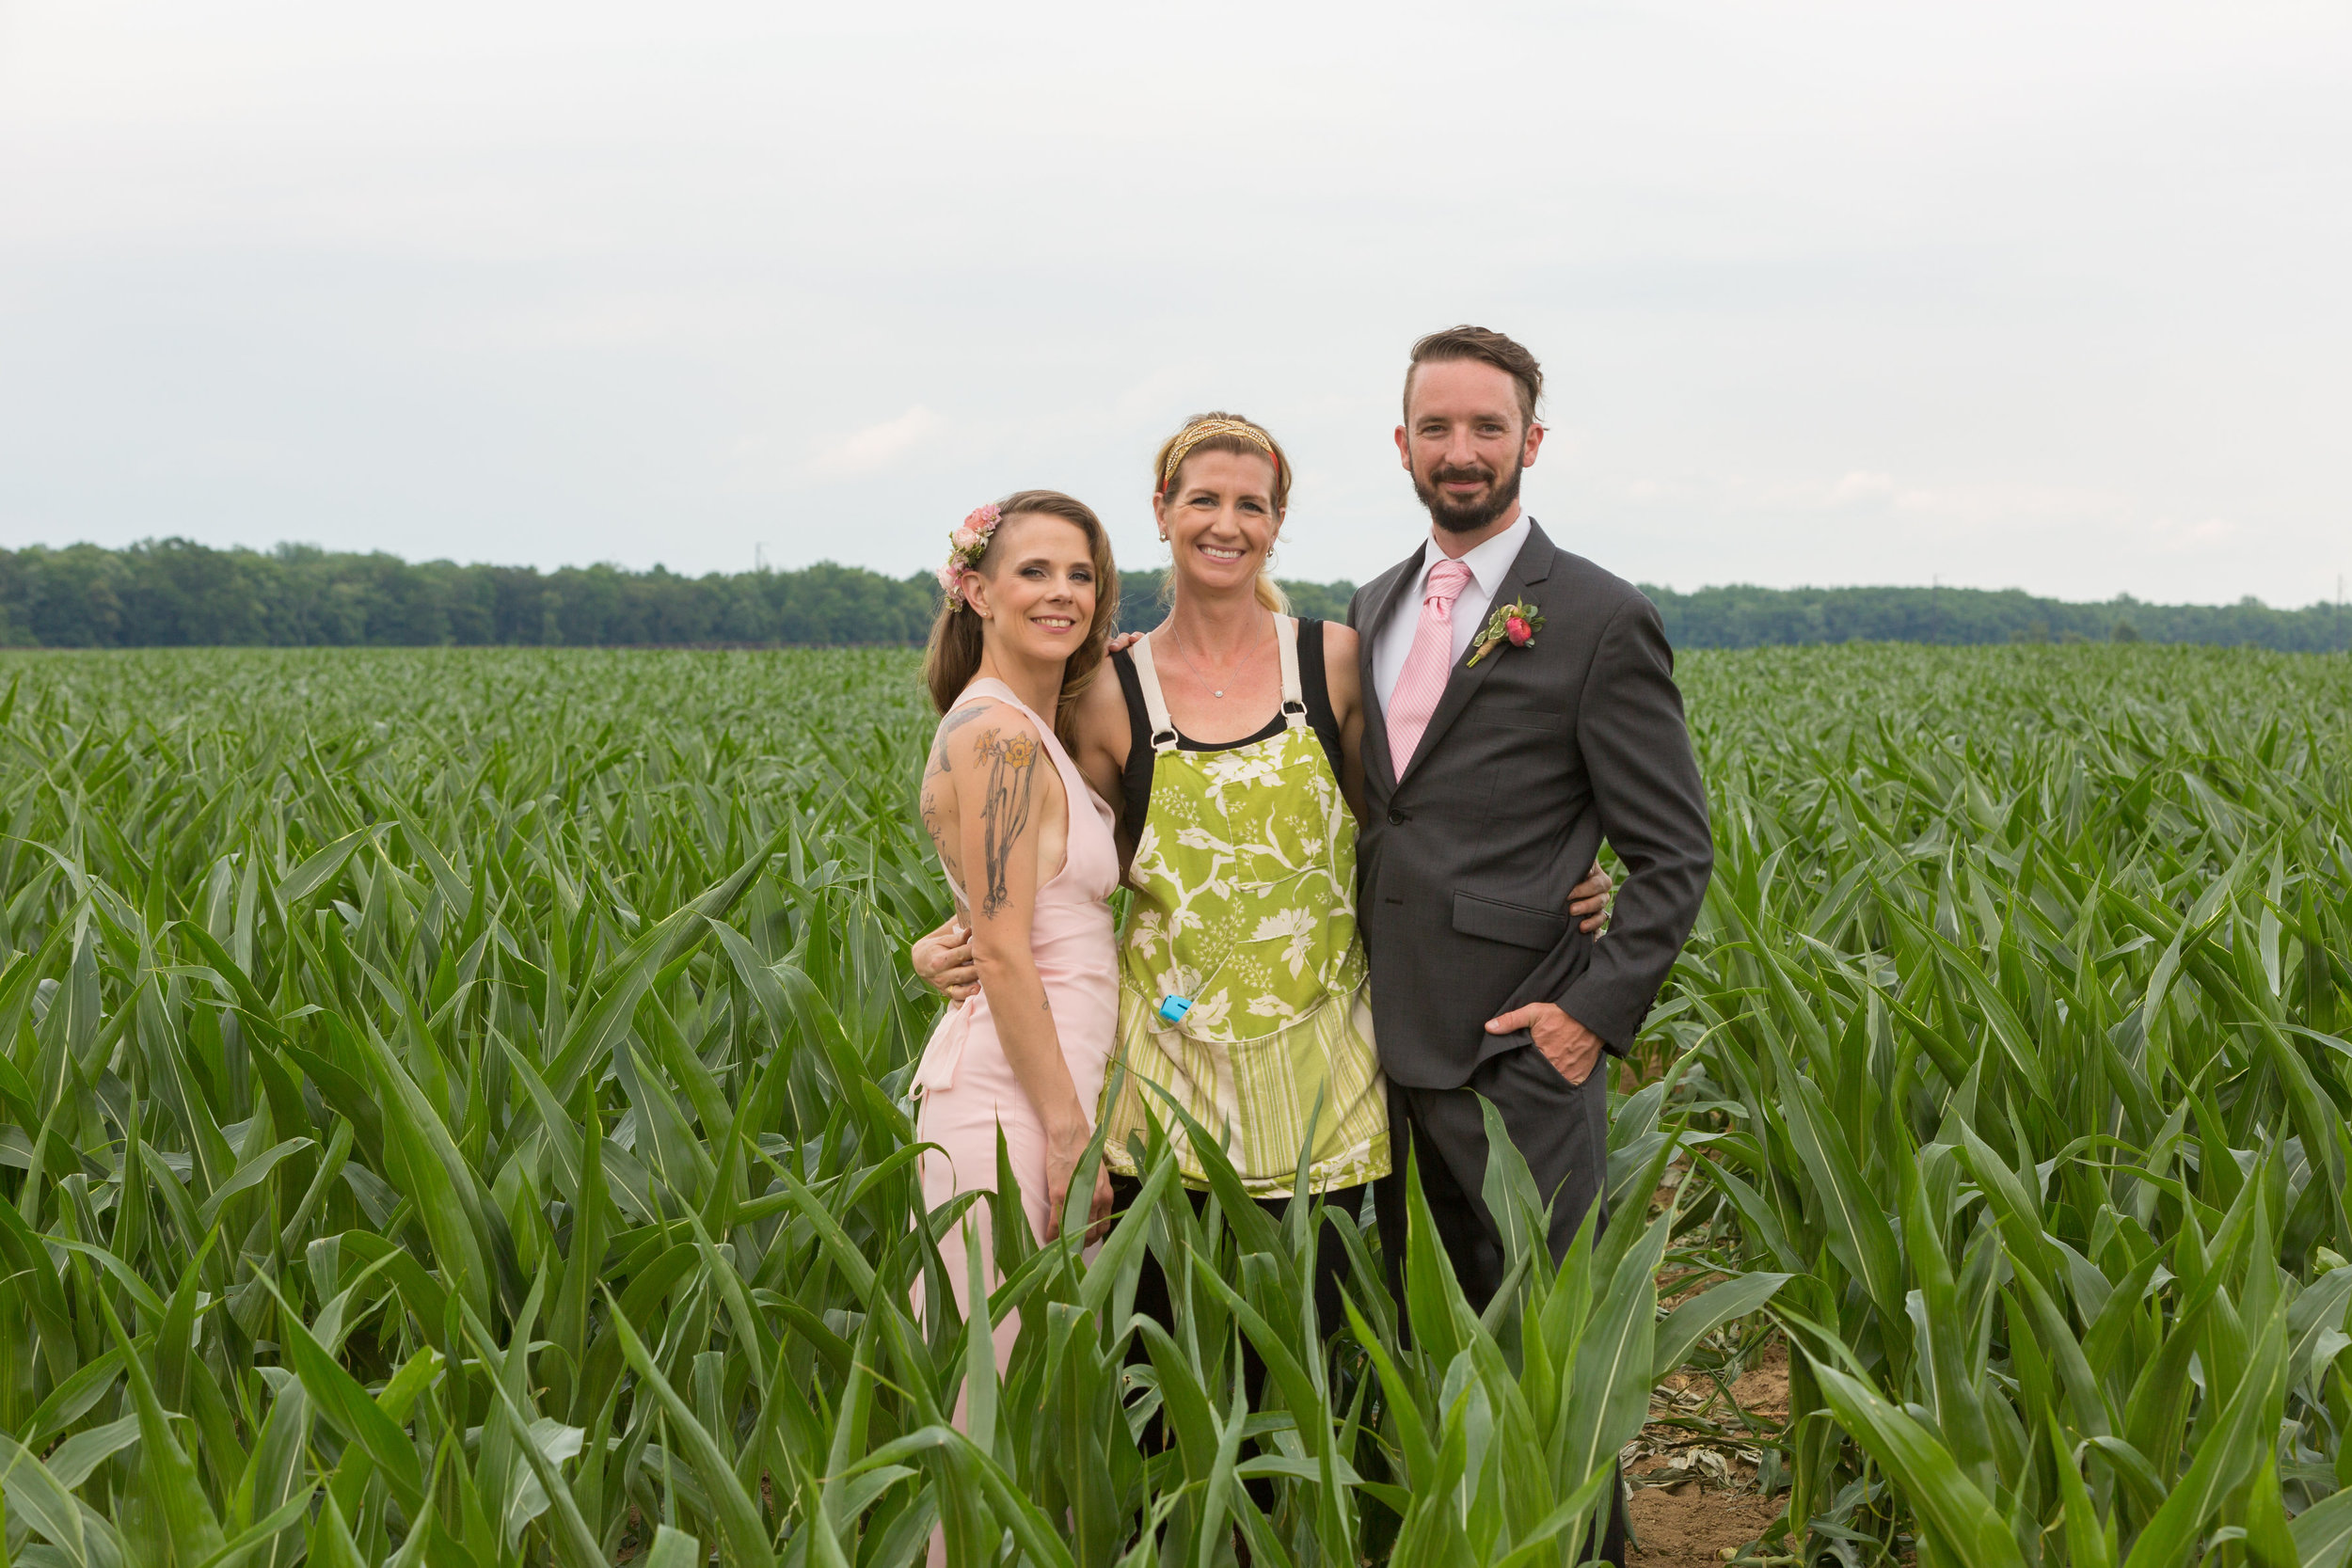 Mary, Stephen and Jill posing during photo shoot